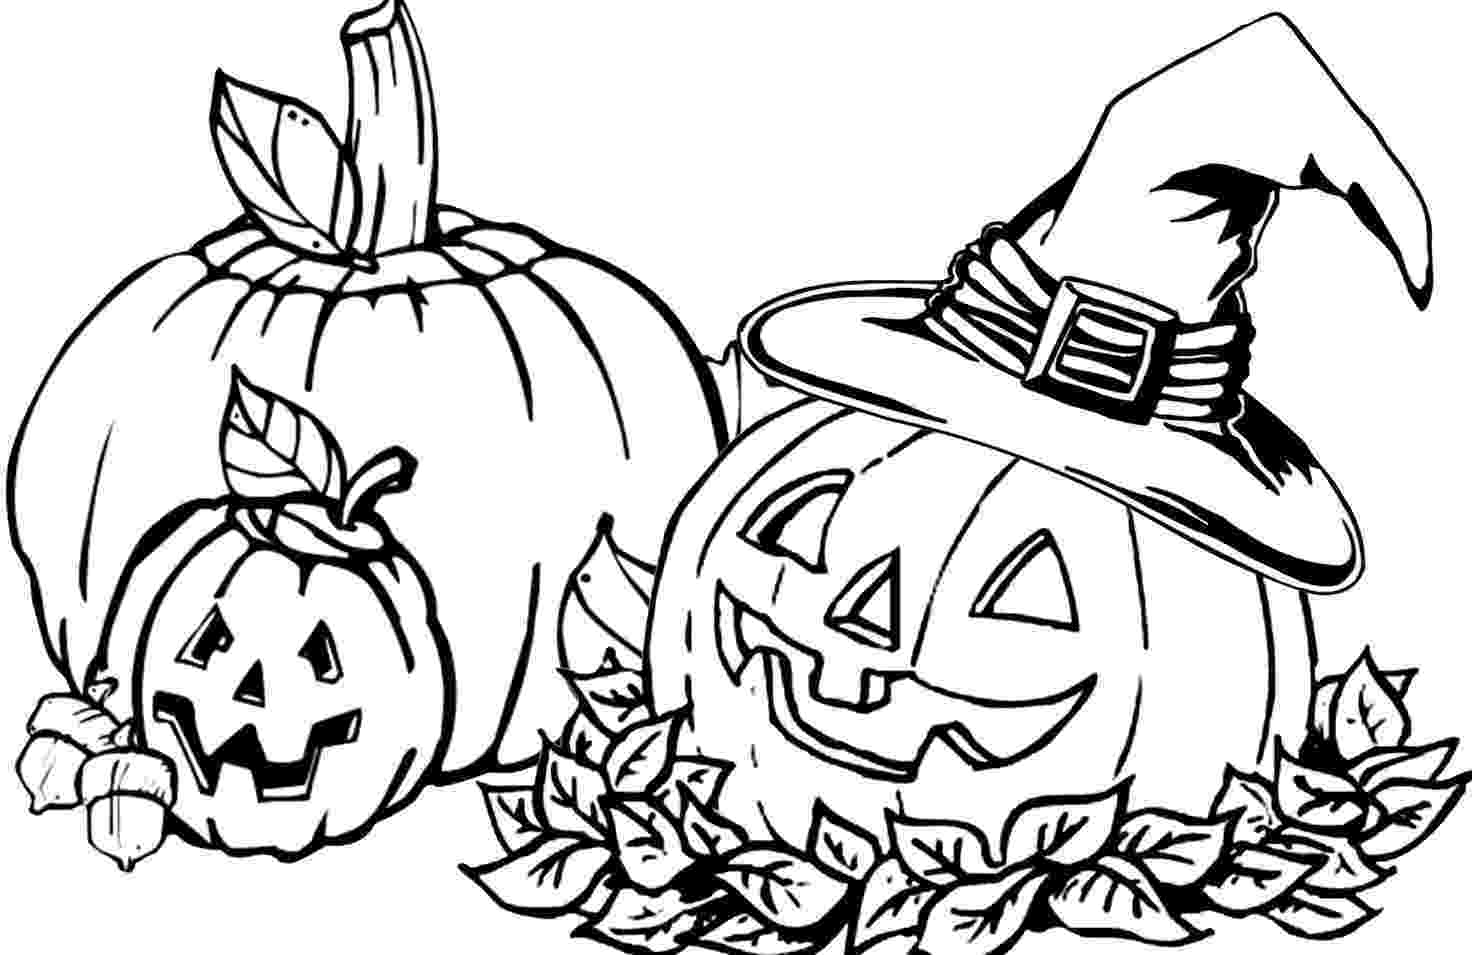 pumkin coloring pages free printable pumpkin coloring pages for kids cool2bkids pumkin coloring pages 1 1